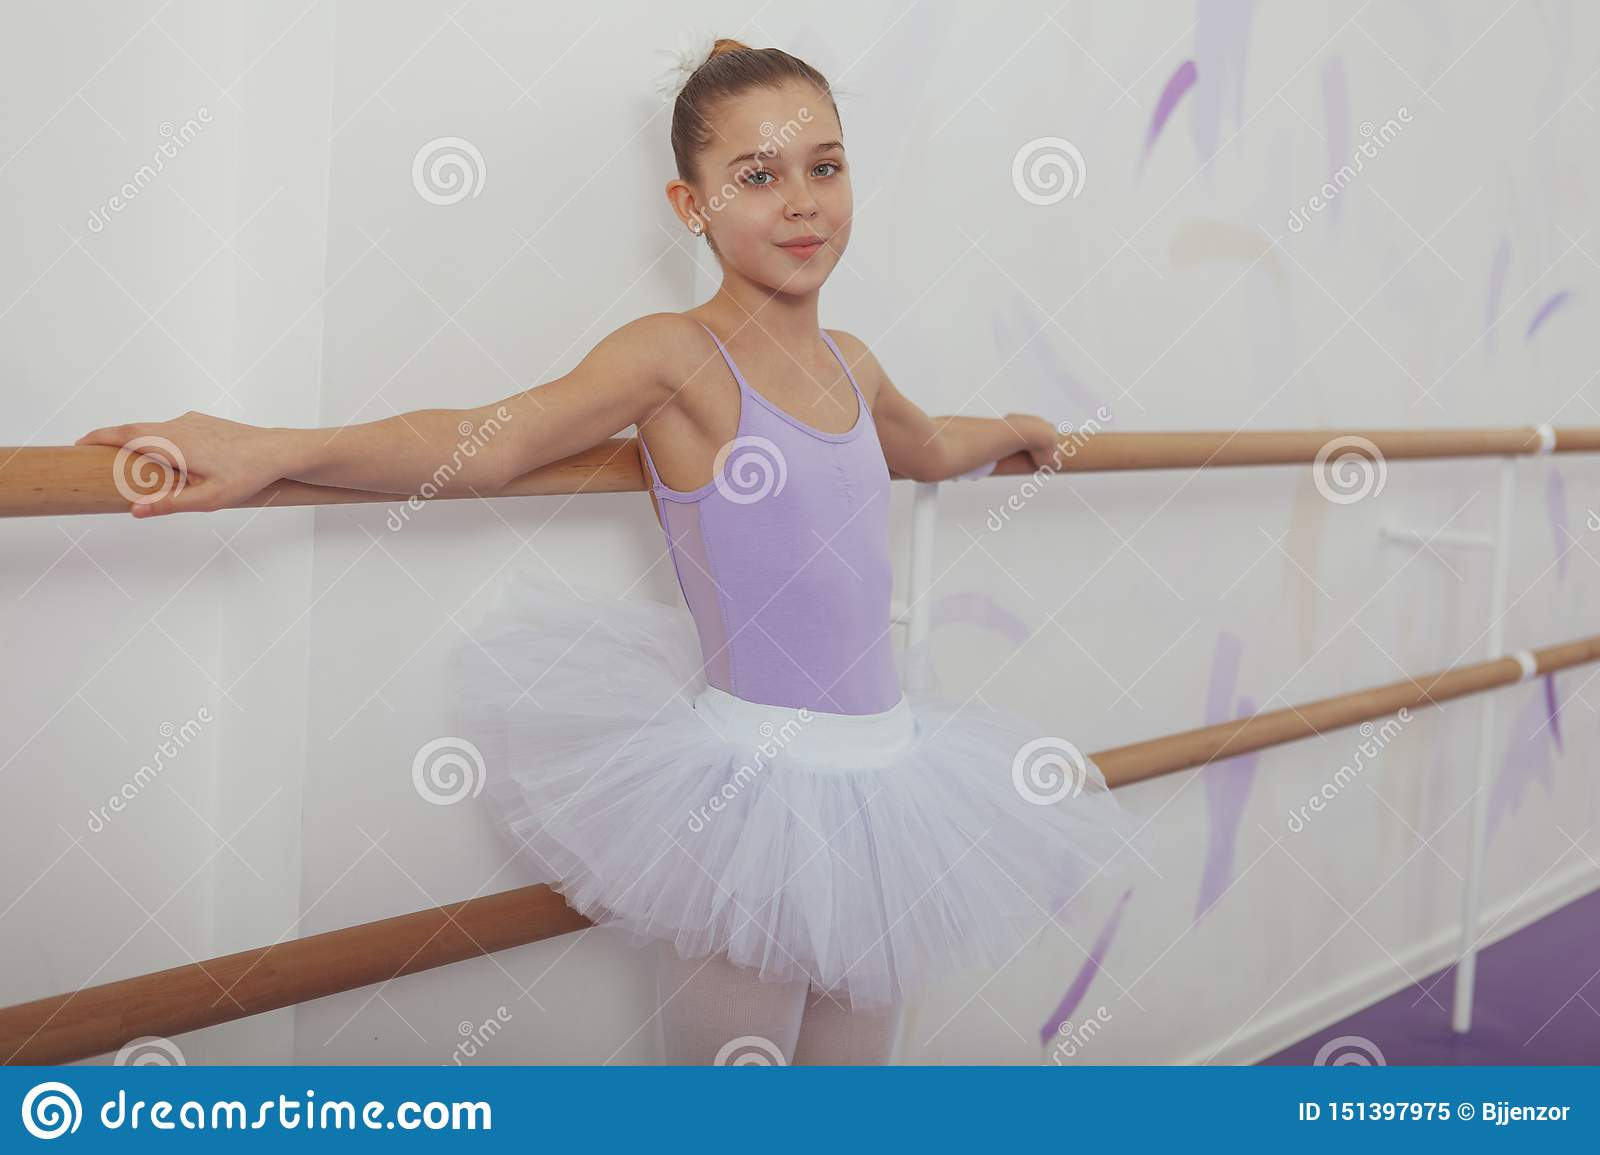 Gorgeous young girl ballerina practicing at dance studio